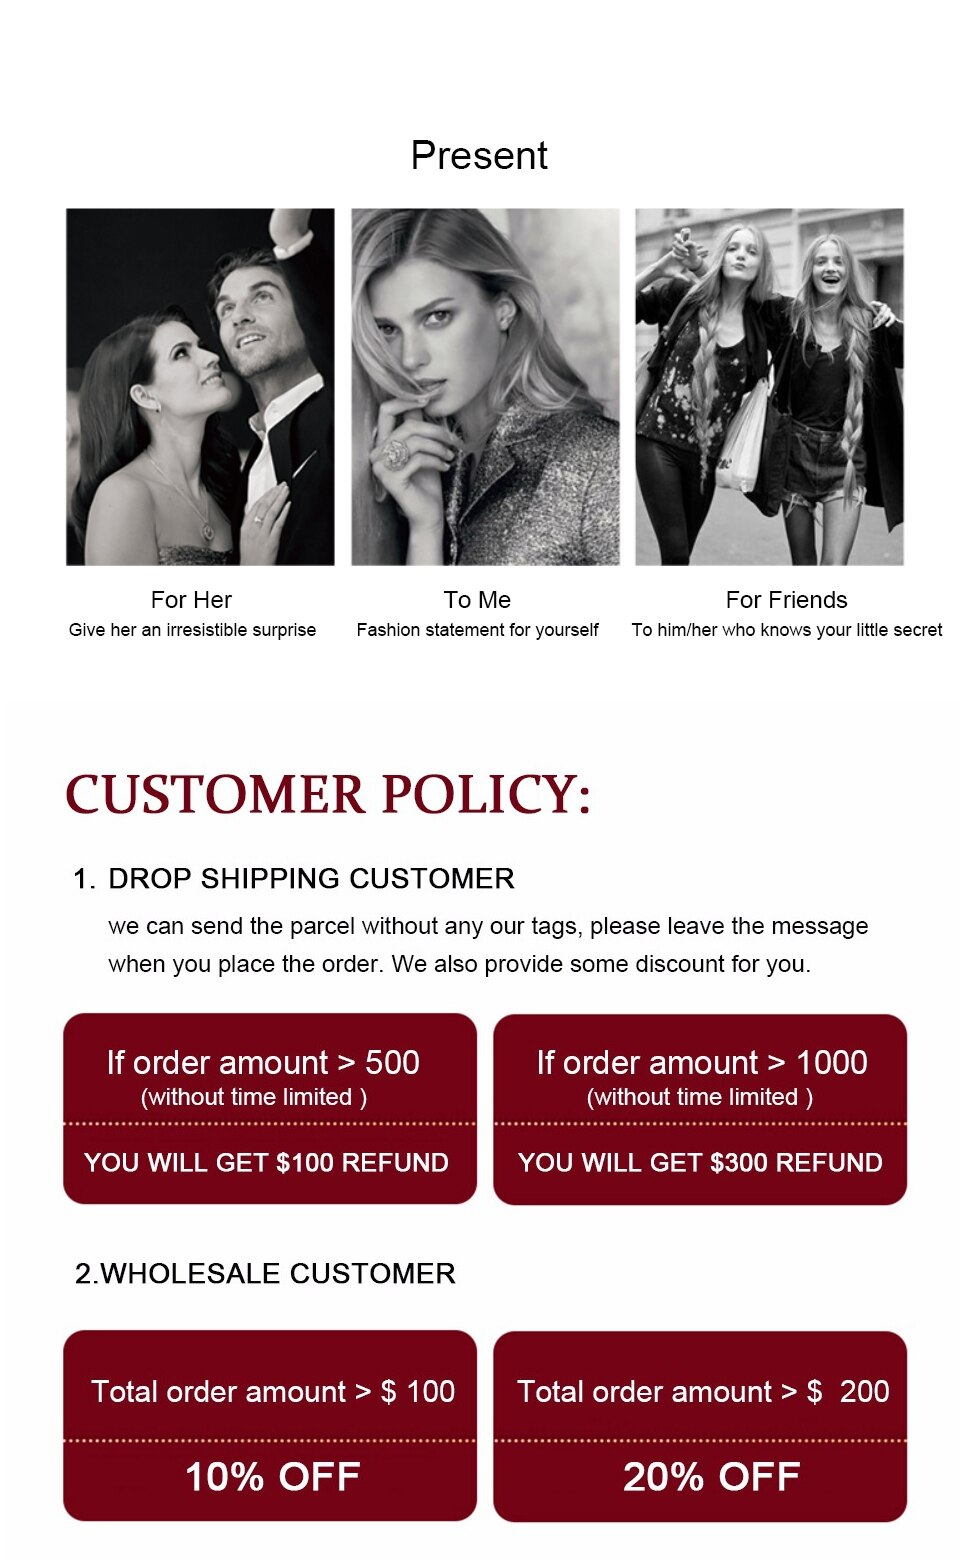 Cring Coco Big Geometric Necklace for Women Fashion New Design Choker Chain Necklaces Enamel Bridal Wedding Jewelry Friends Gift